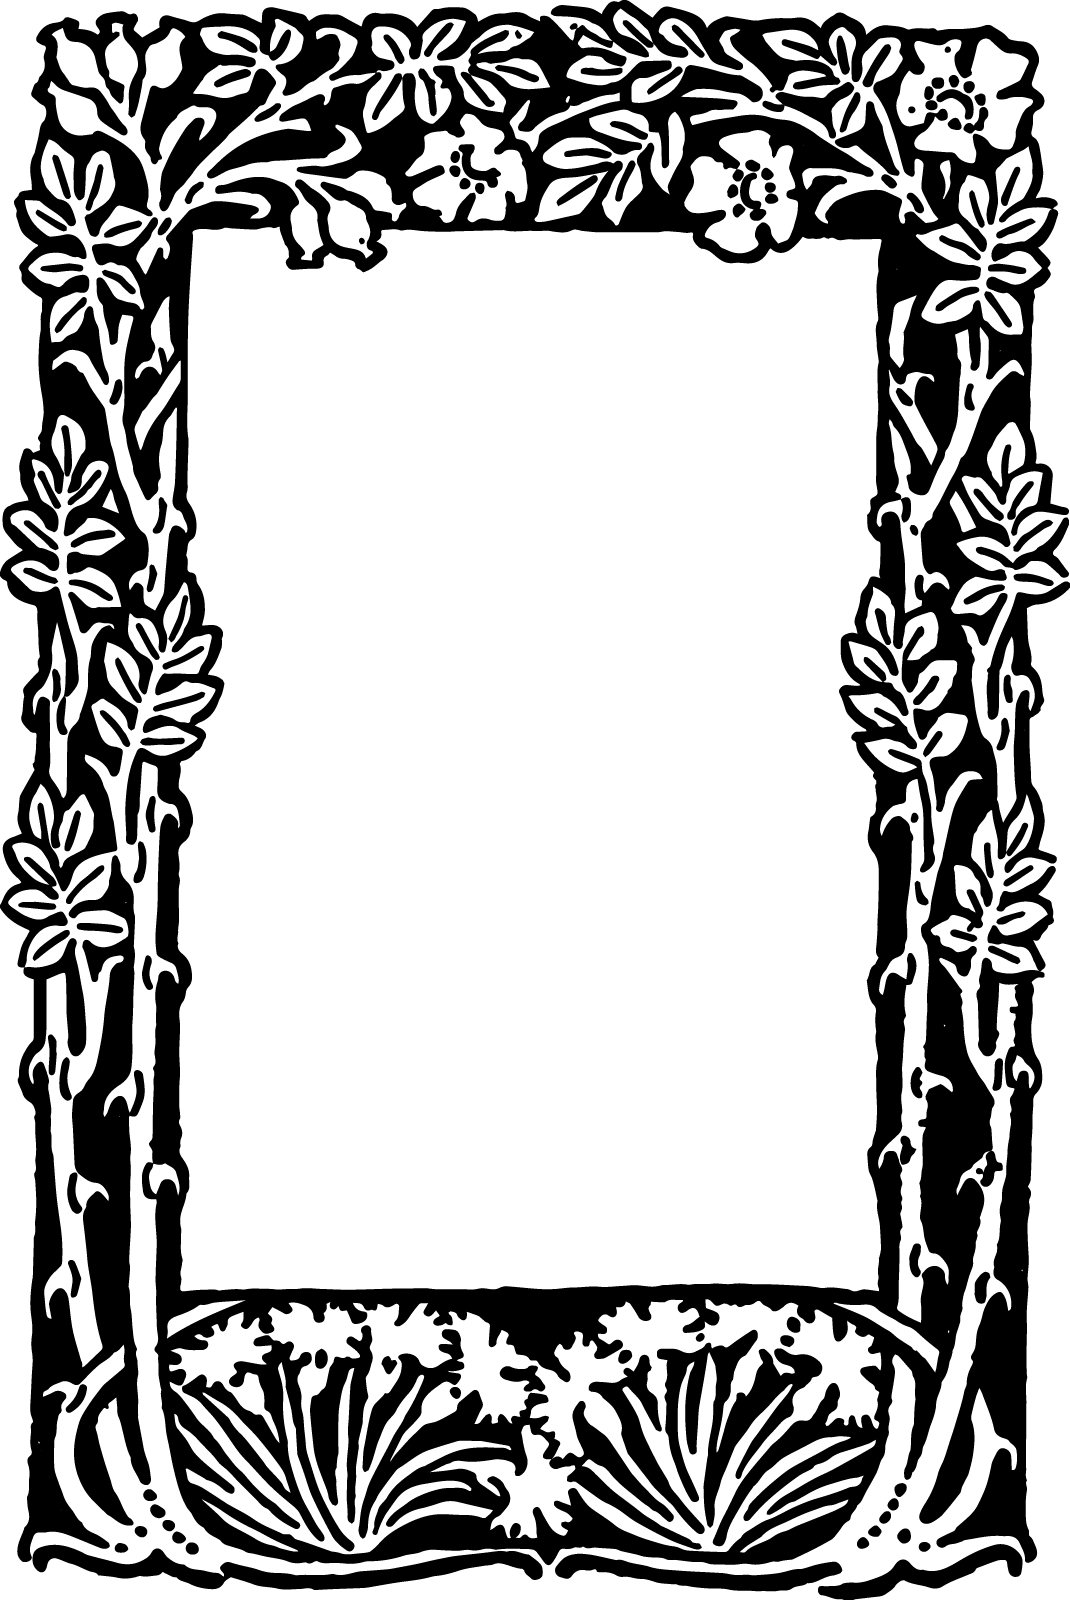 Free Victorian Borders and Frames Clip Art